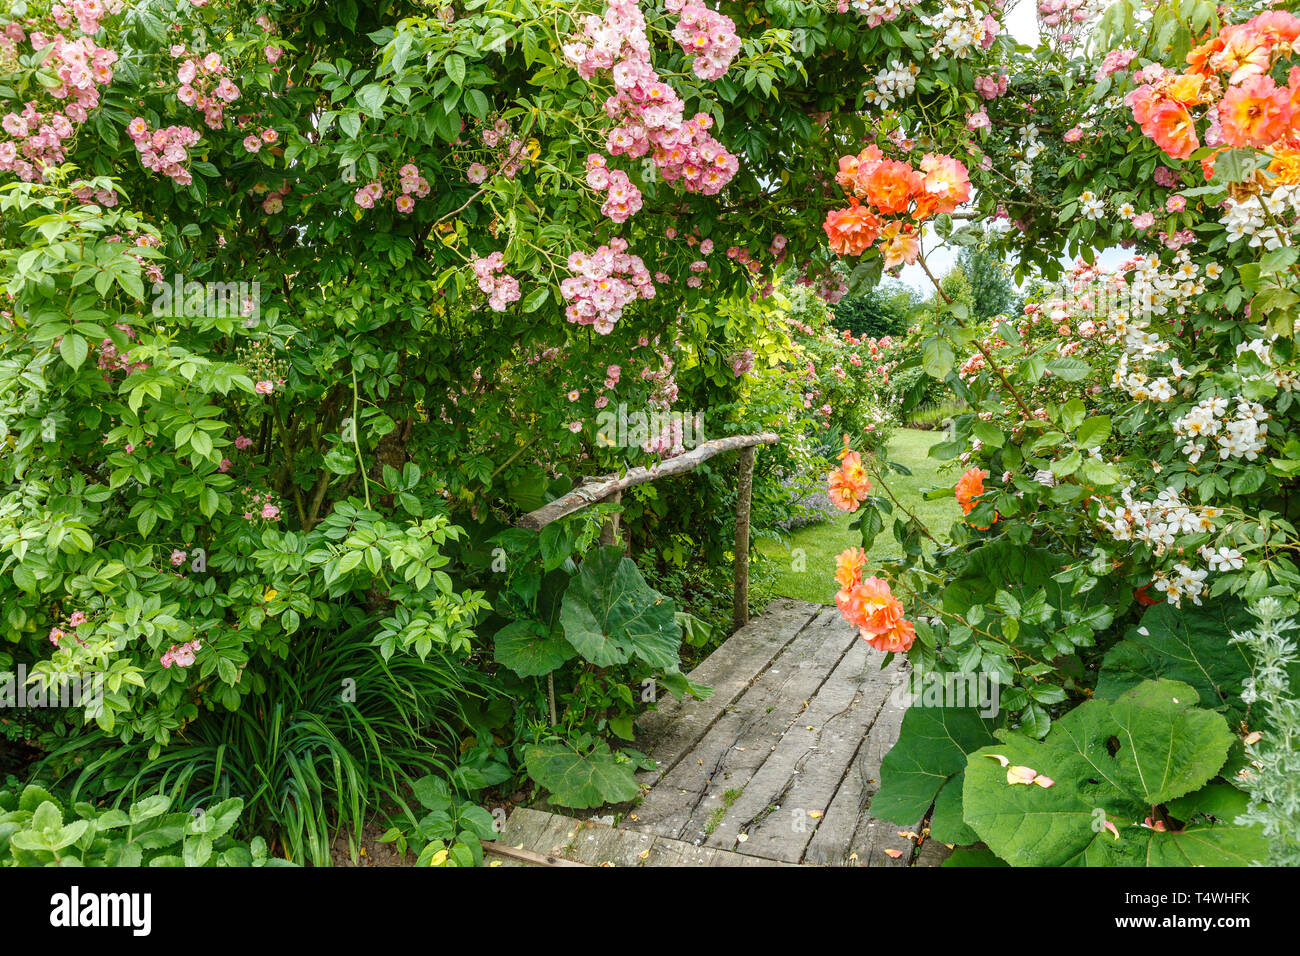 Horticulteur Val D Oise japanese val stock photos & japanese val stock images - alamy